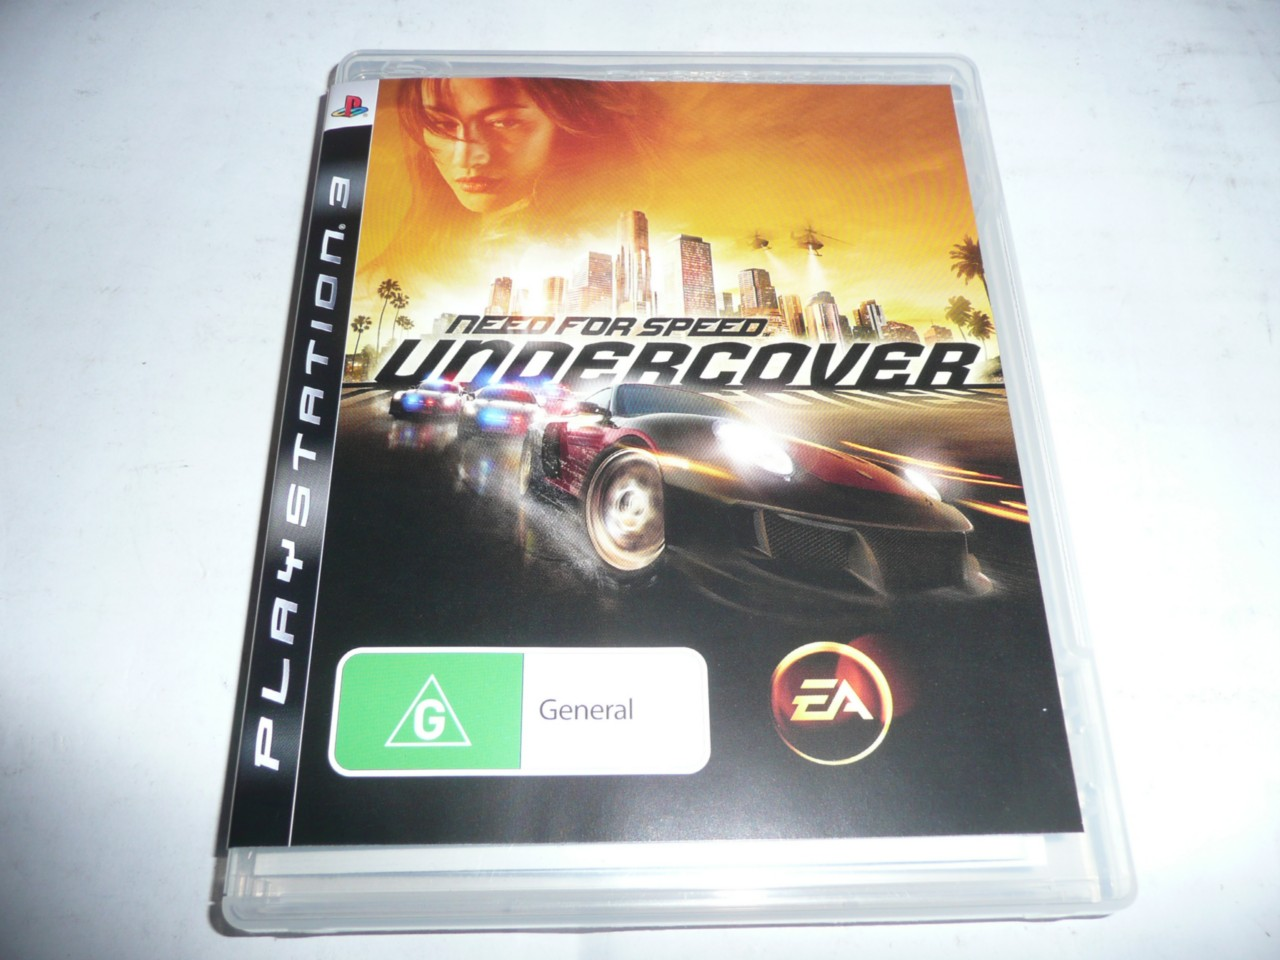 need for speed undercover ps3 game new 014633154535 ebay. Black Bedroom Furniture Sets. Home Design Ideas